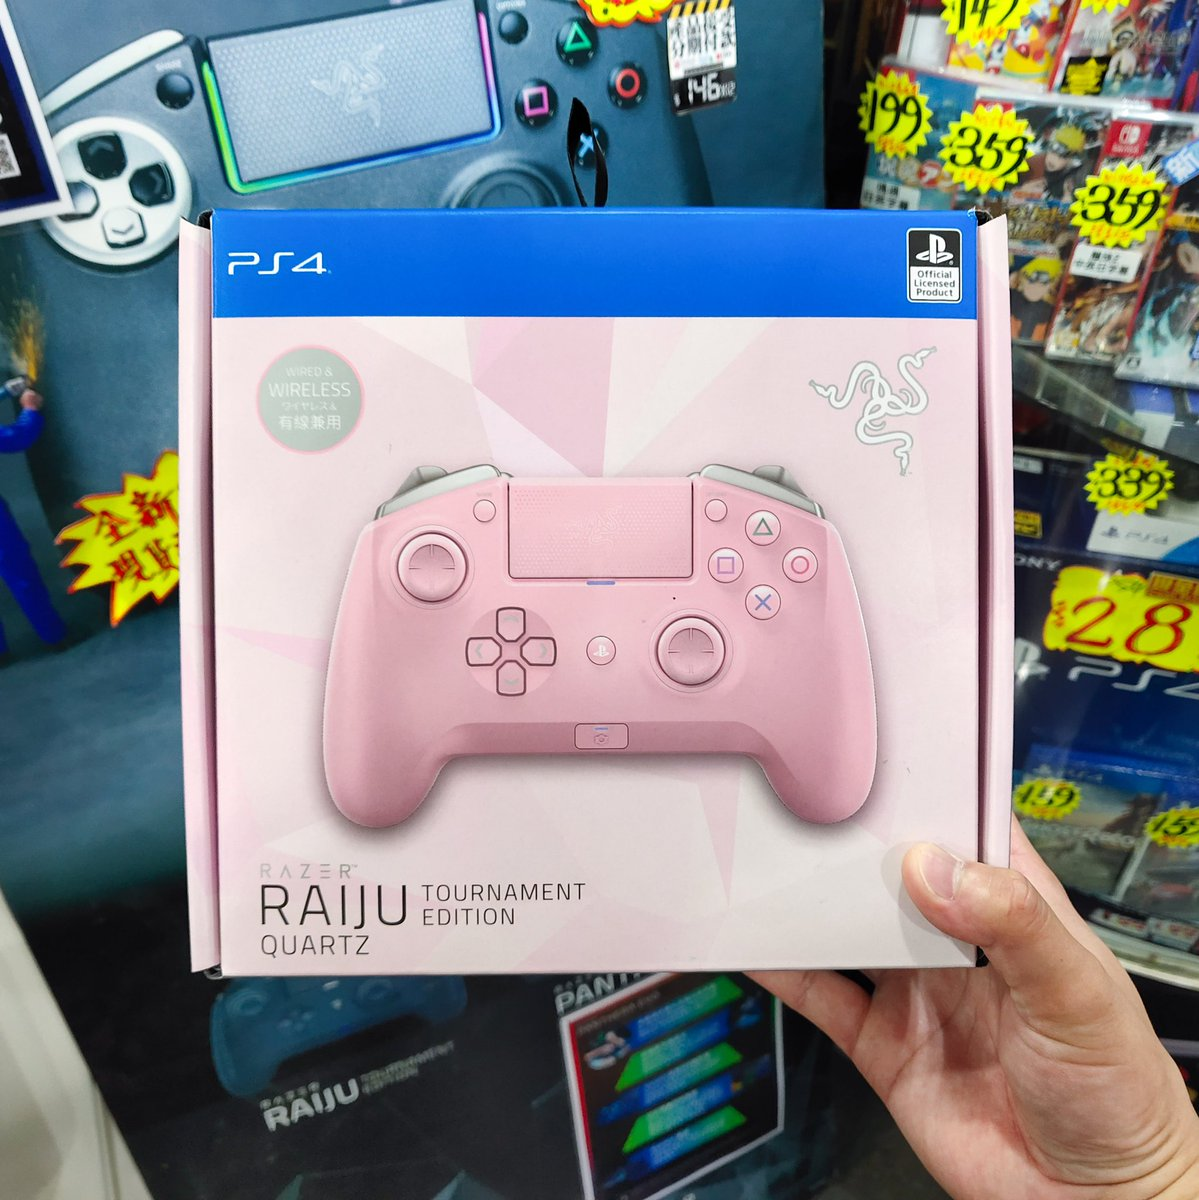 Richard Lai On Twitter New Toy Razer Raiju Quartz The toy plush has a soft body, plus a sturdy base filled with beans, perfect for cuddling or display as a collectible. toy razer raiju quartz